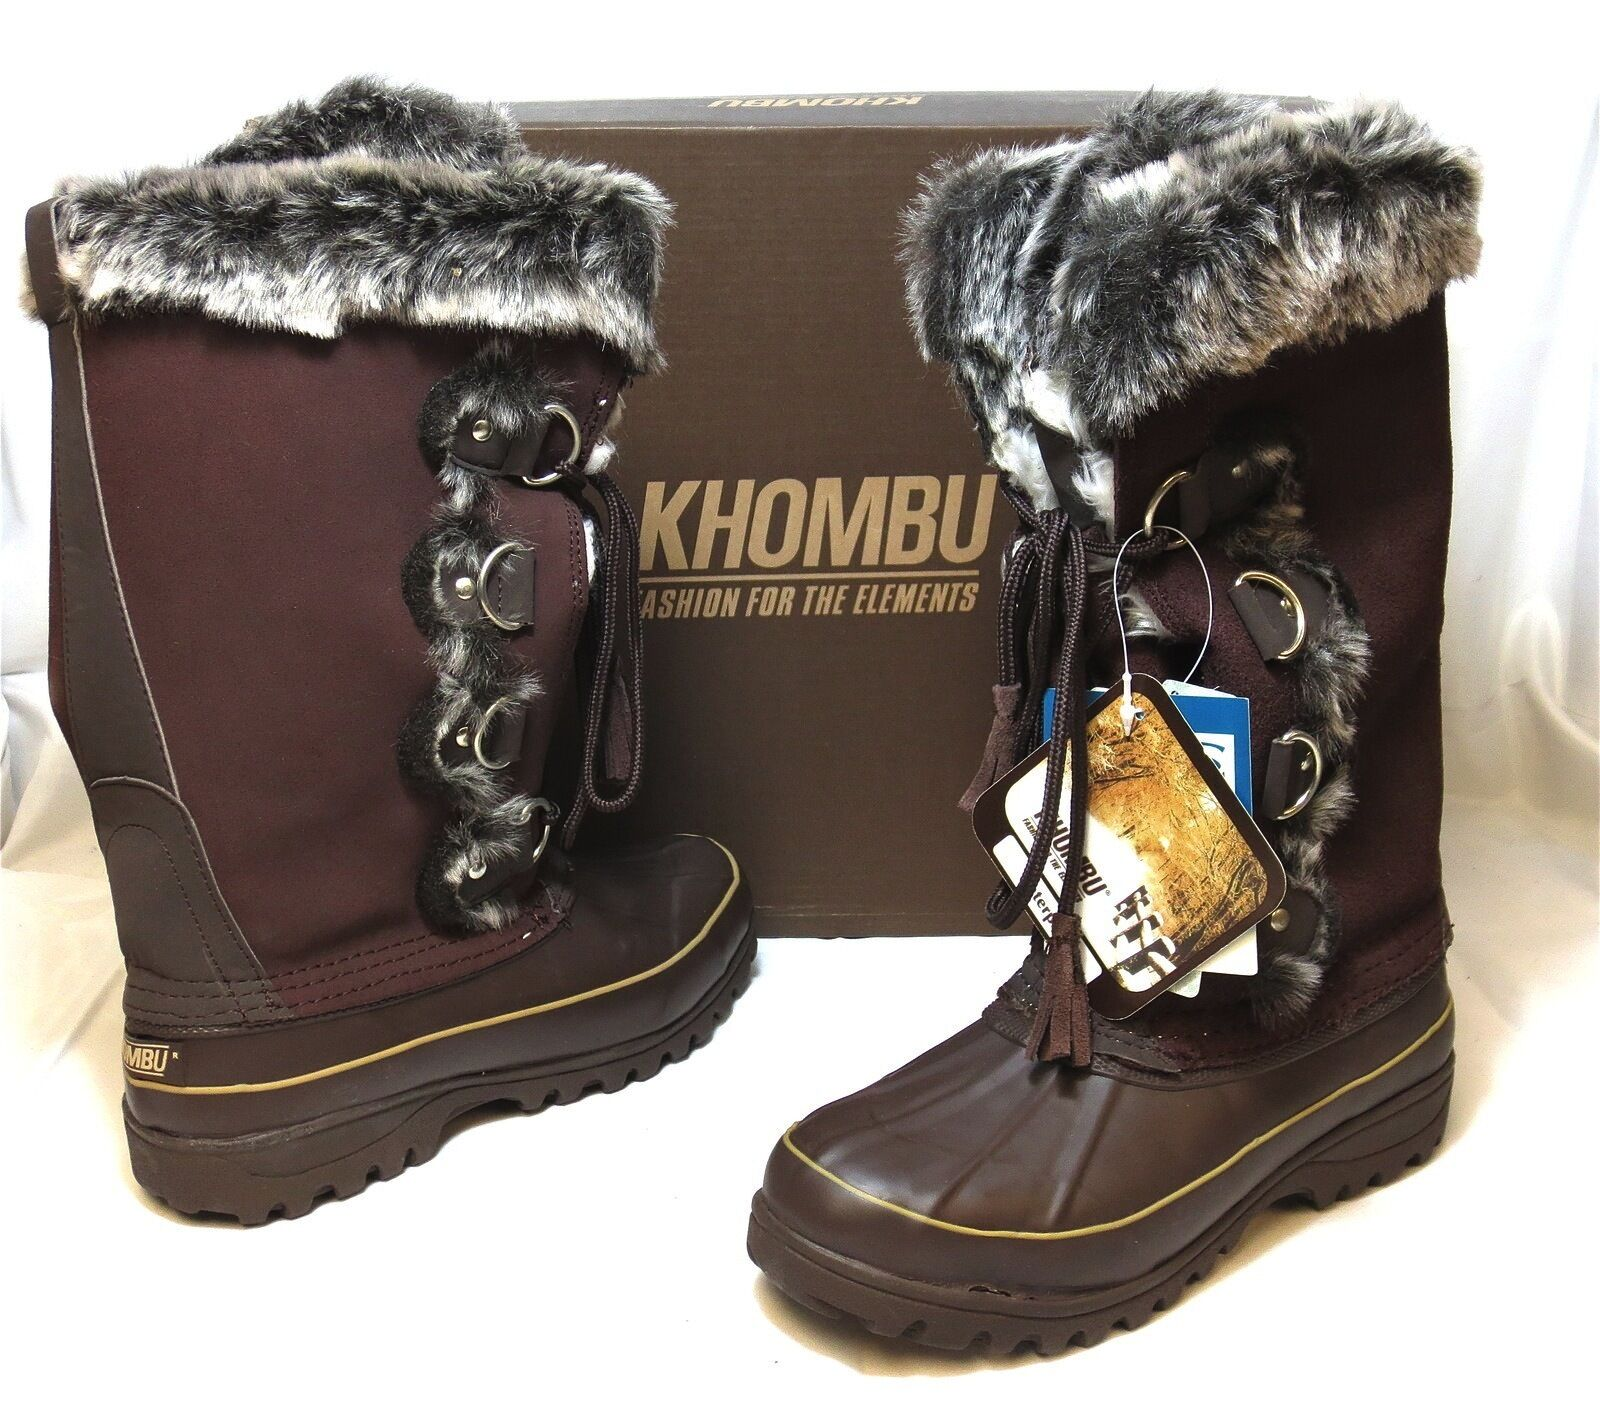 KHOMBU Women's Arctic Winter Snow Boot Dark Brown NIB Warm Lace Tie faux fur NEW